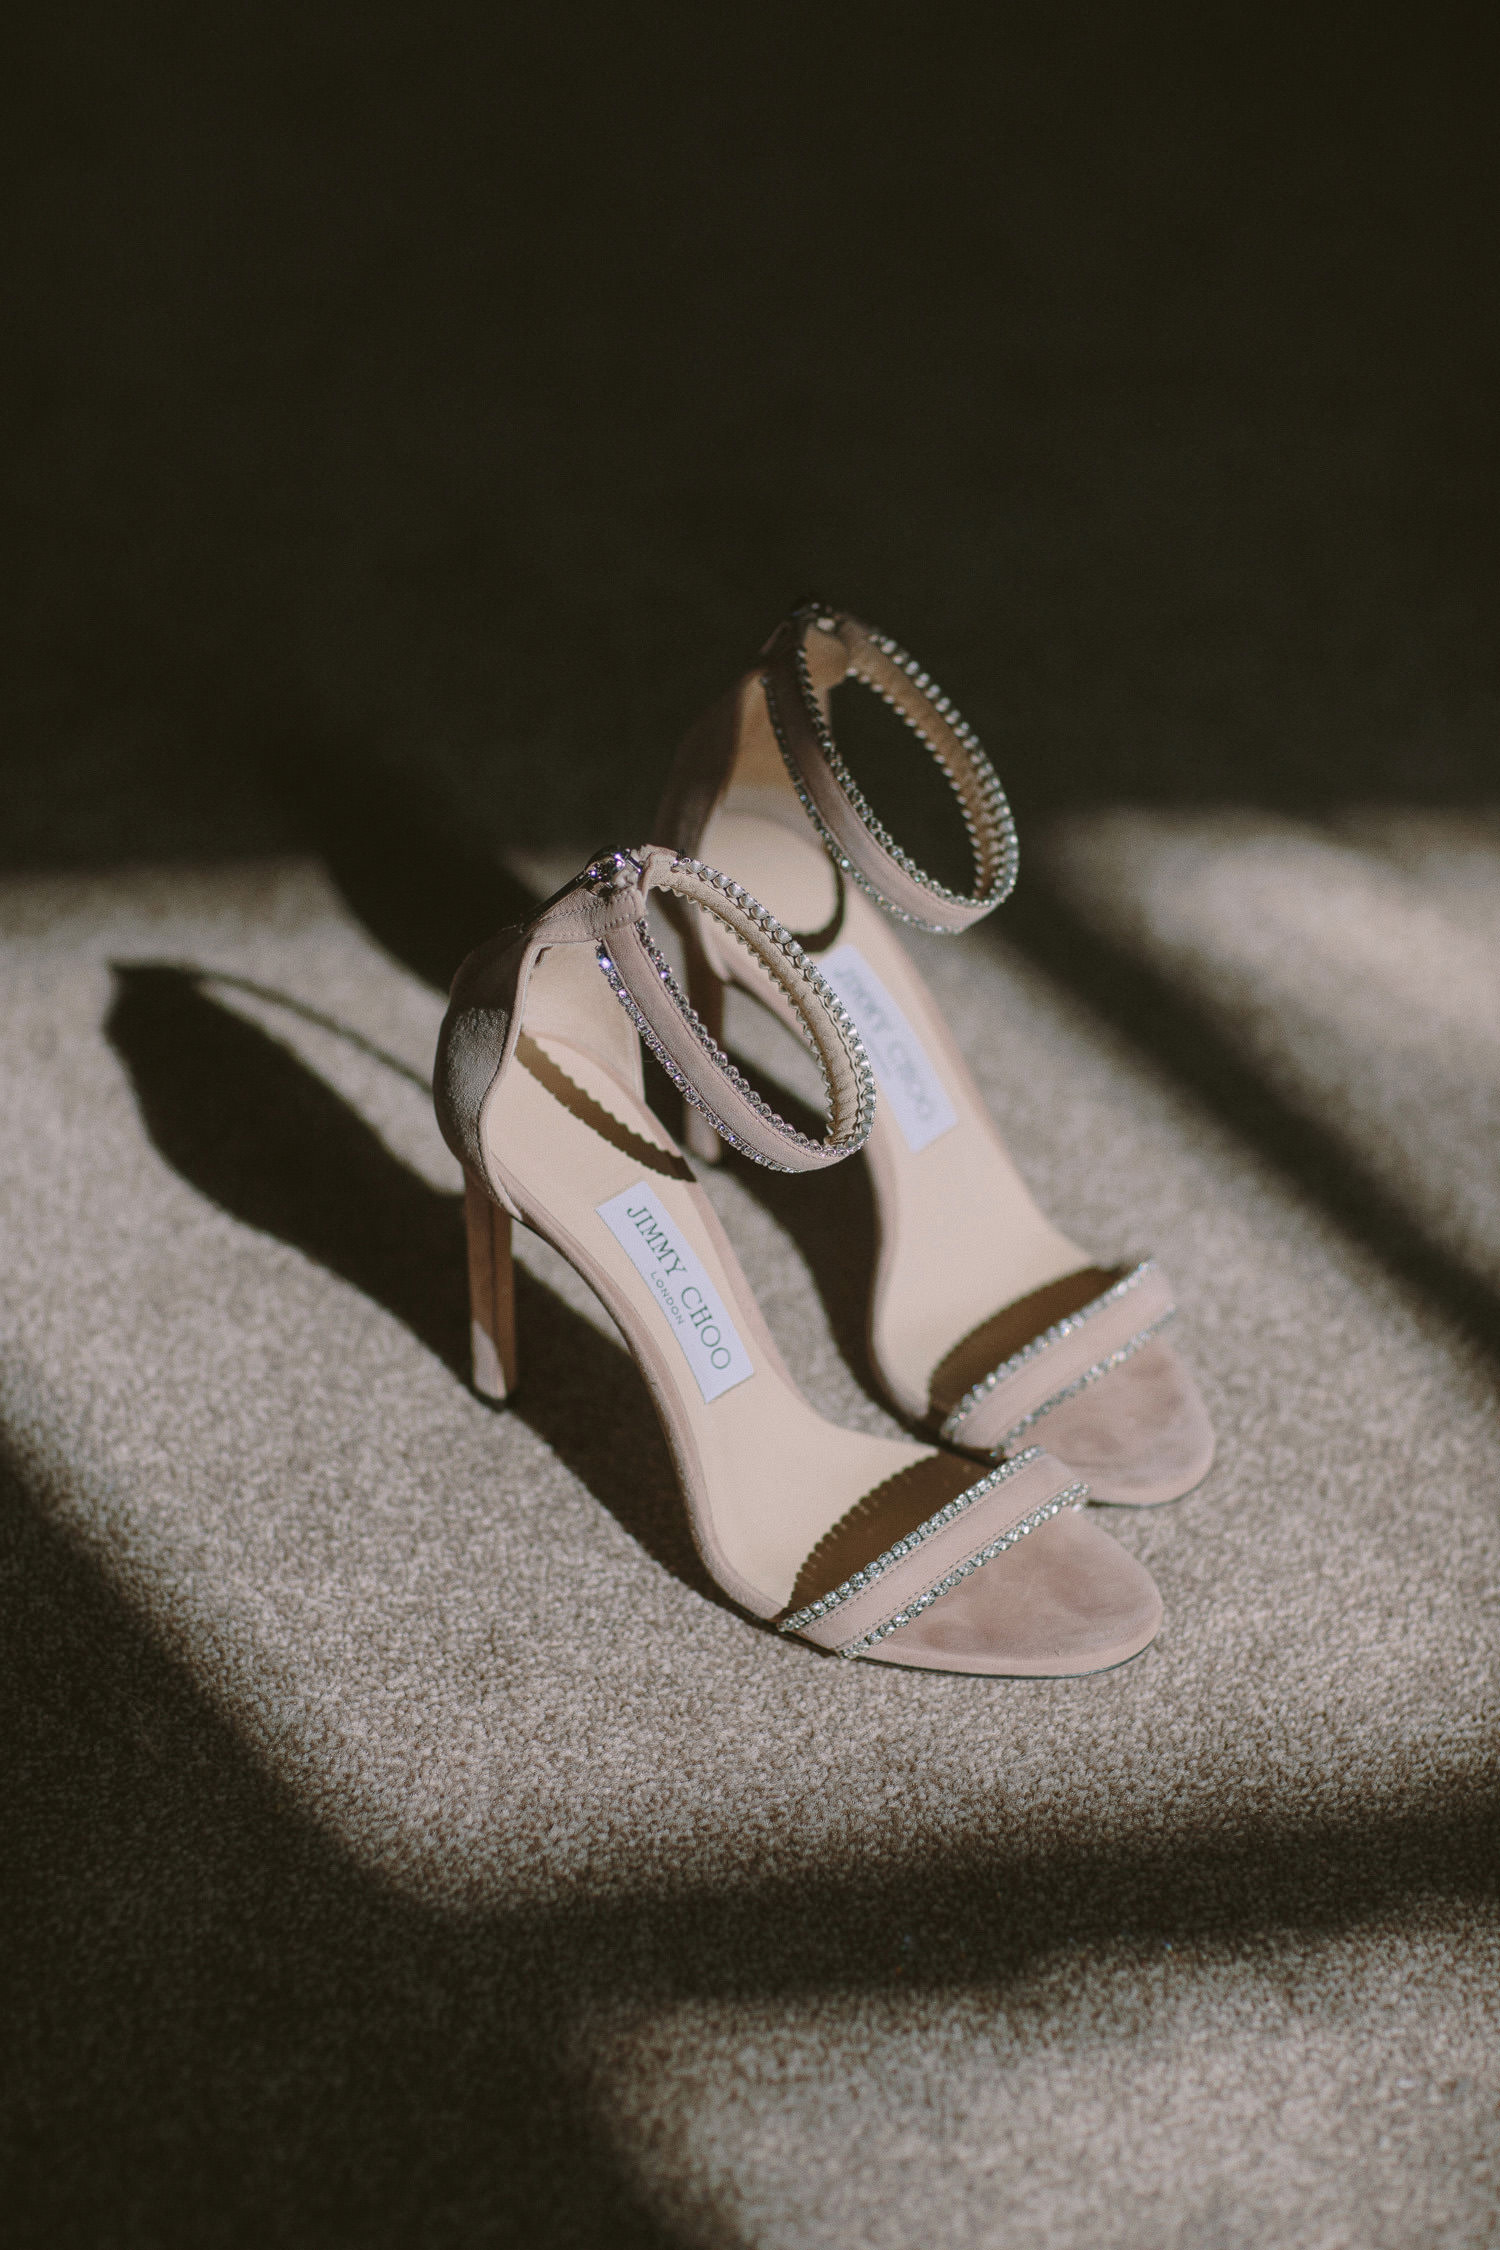 beige jimmy choo high heeled shoes